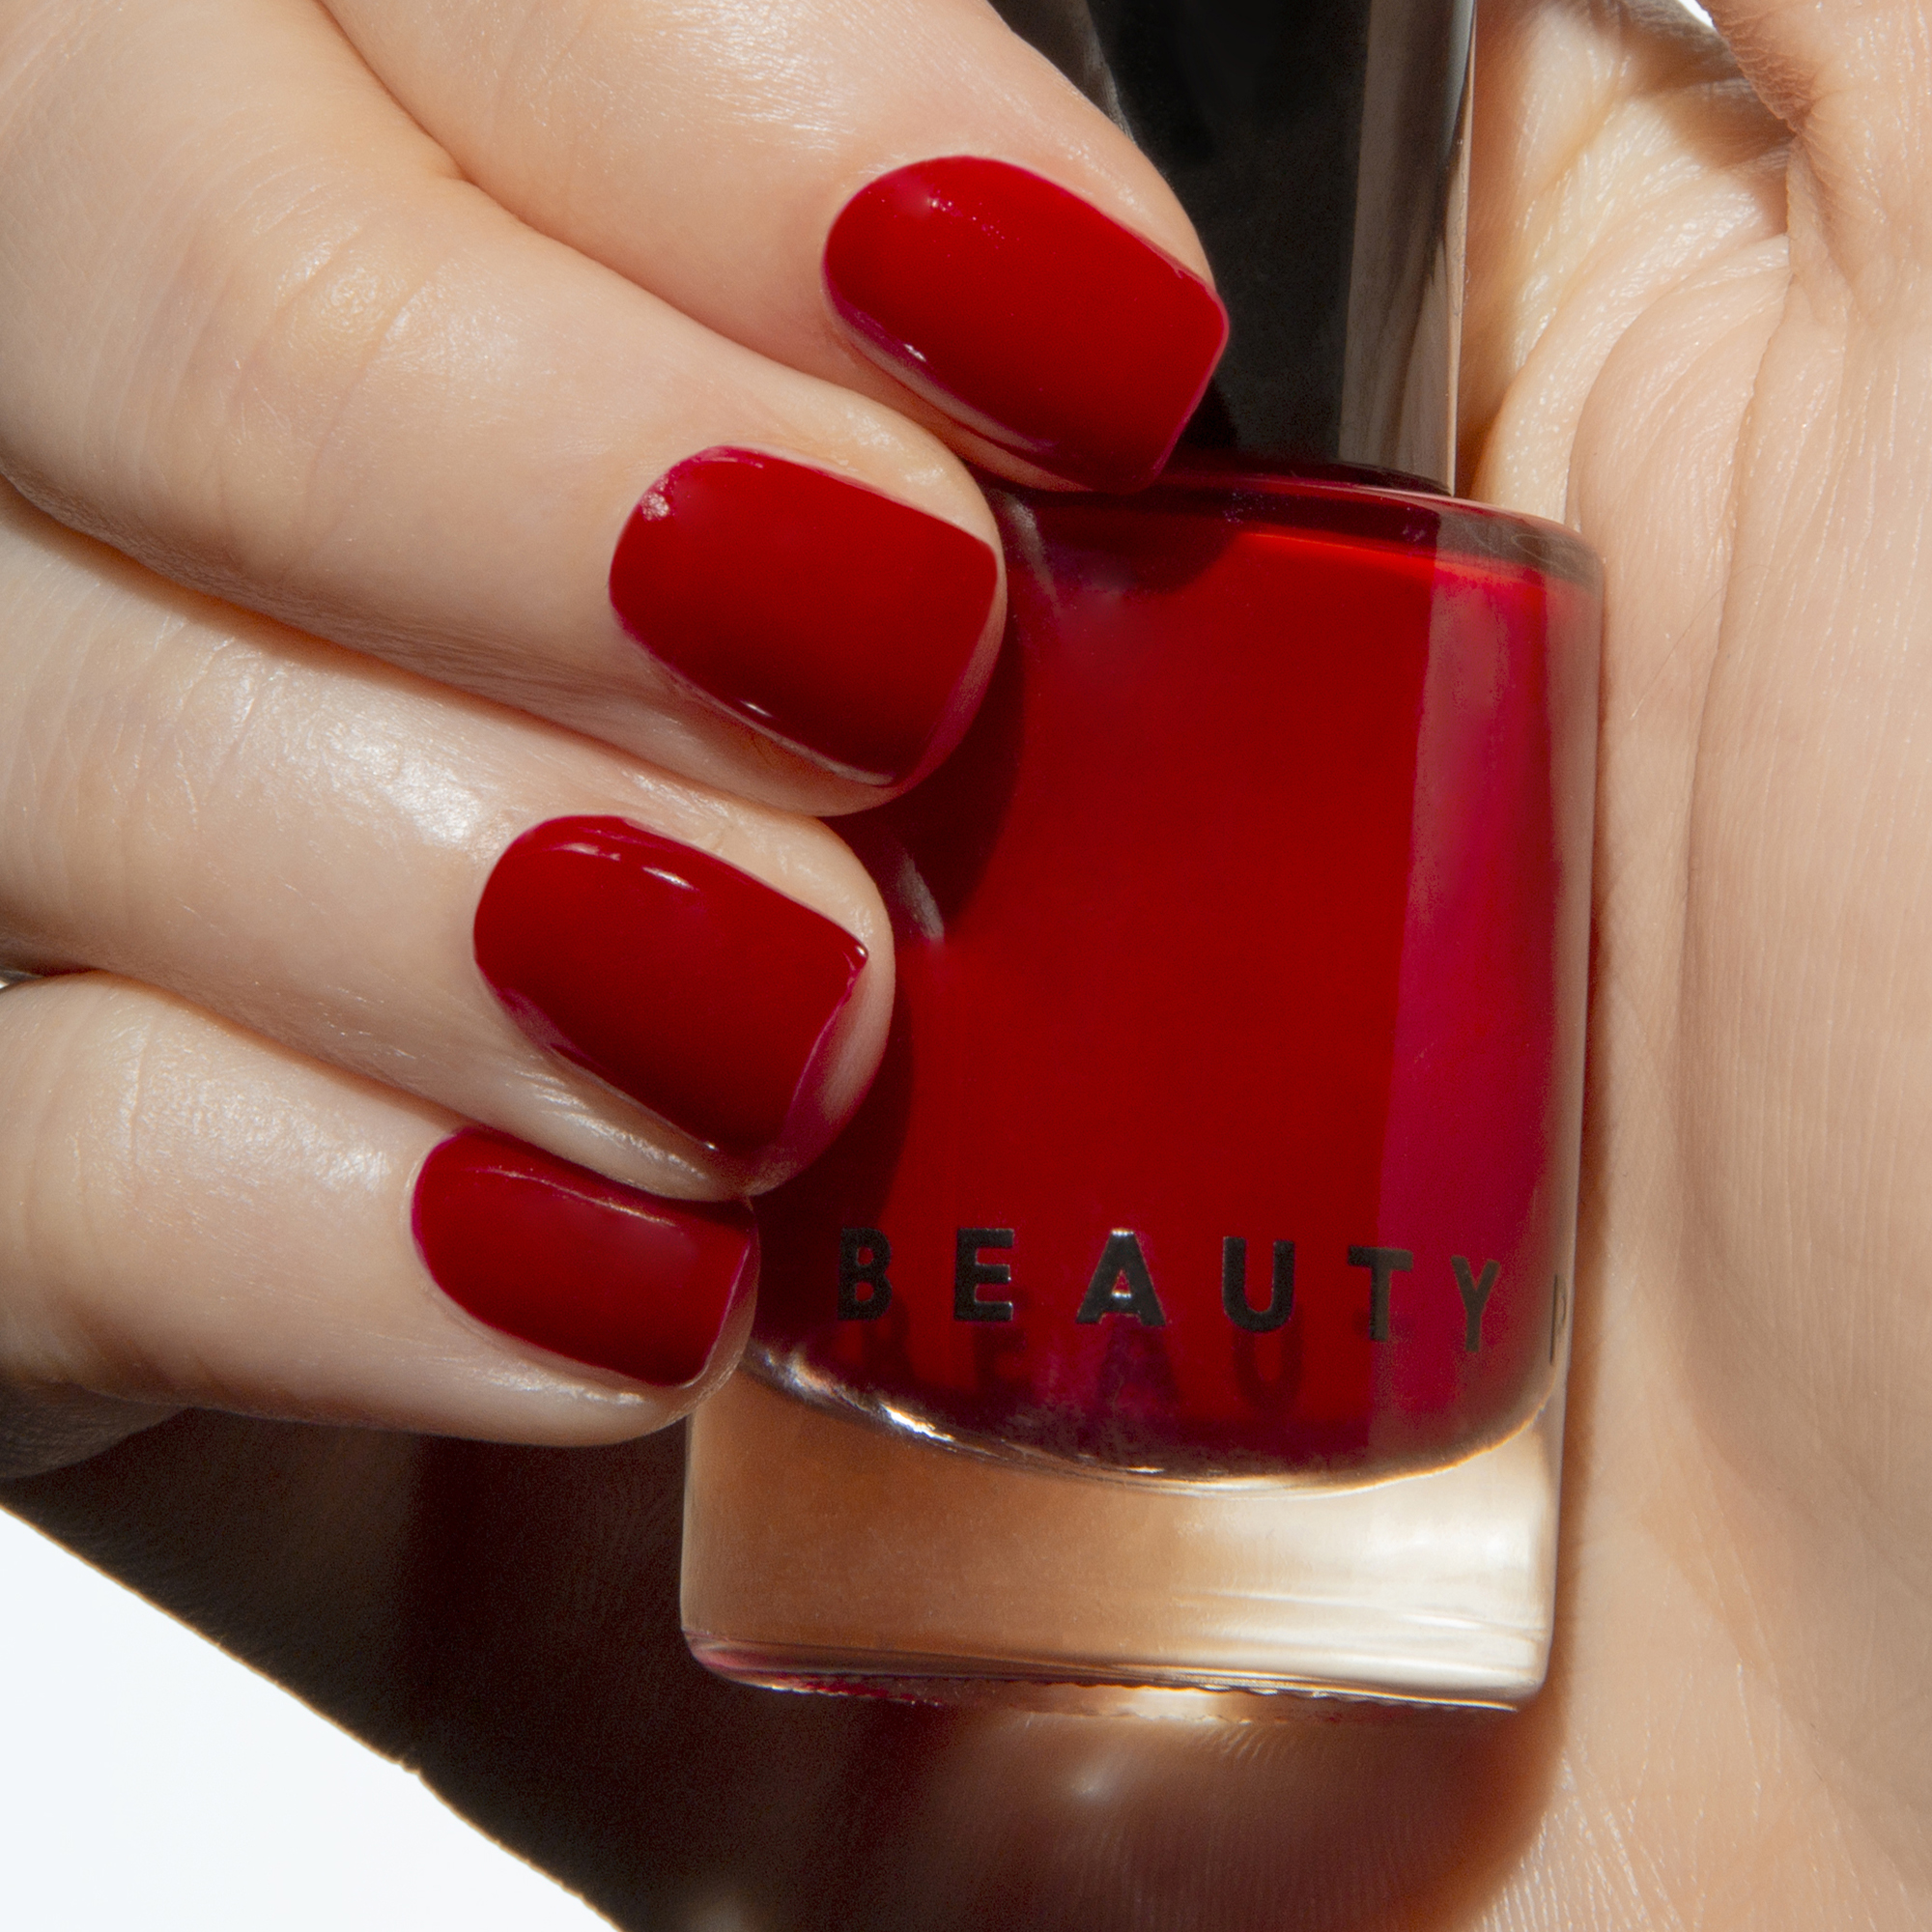 Wondercolour™ Nail Polish in Riot Act Red by Beauty Pie